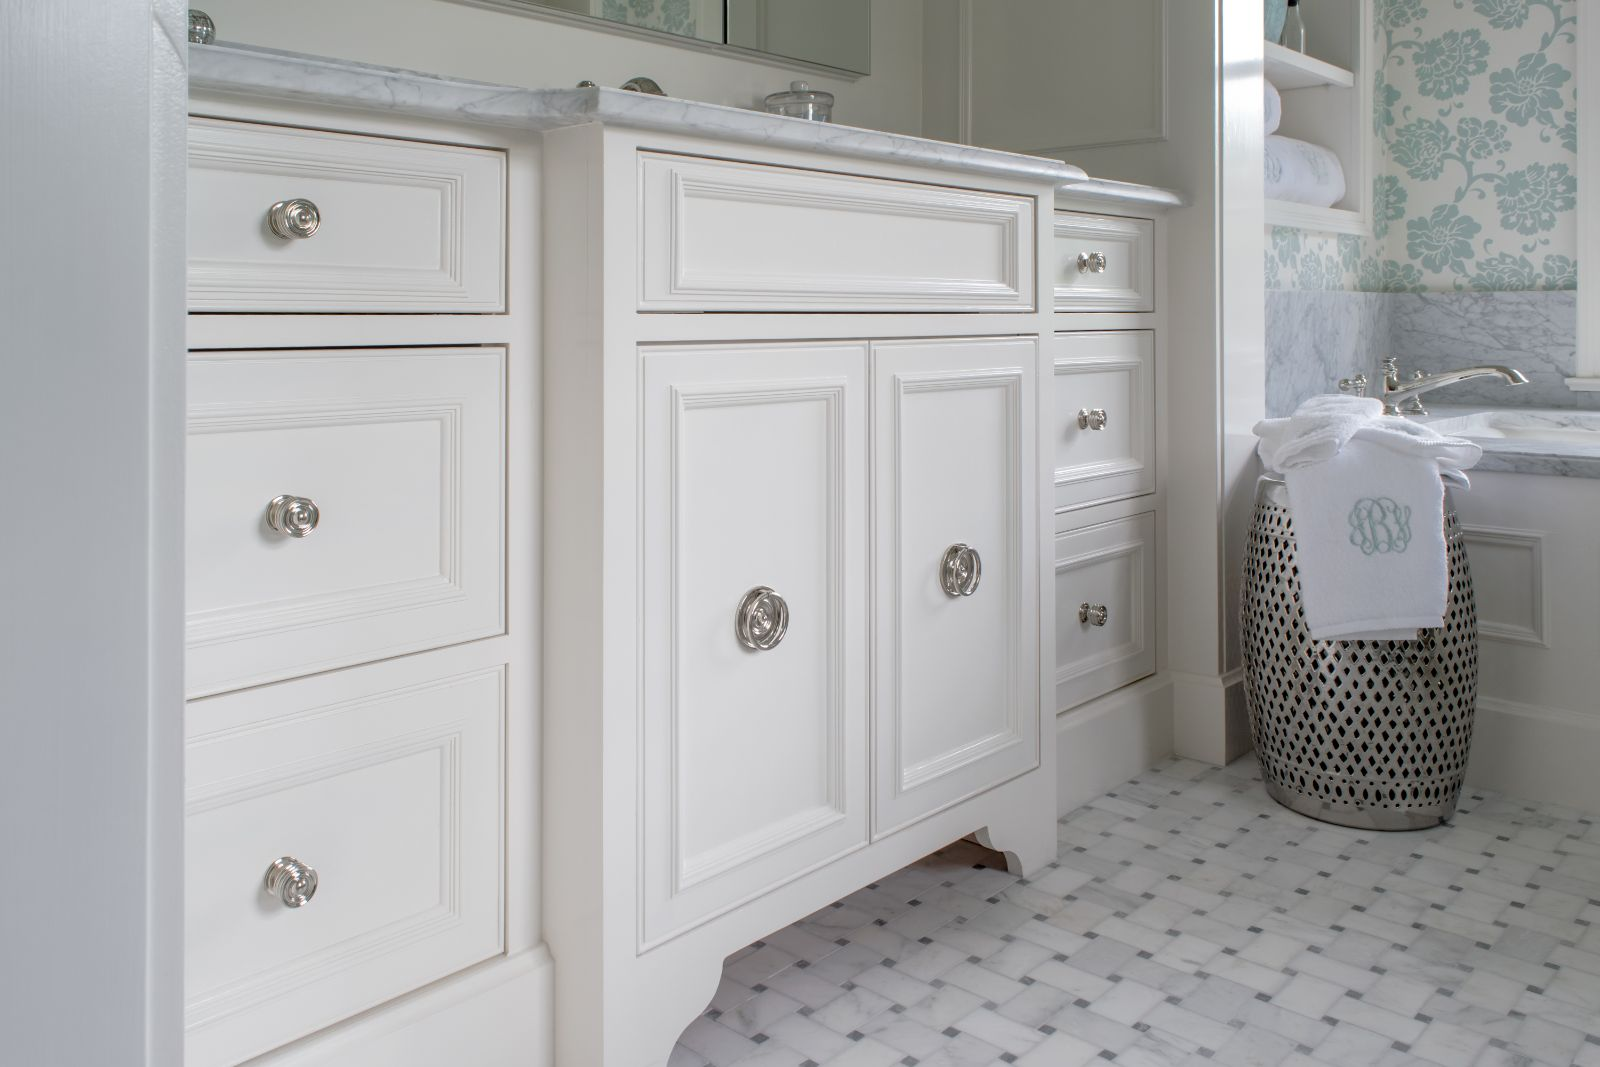 Boyce Bathroom Renovation with white cabinets, tiled floor, and silver accents